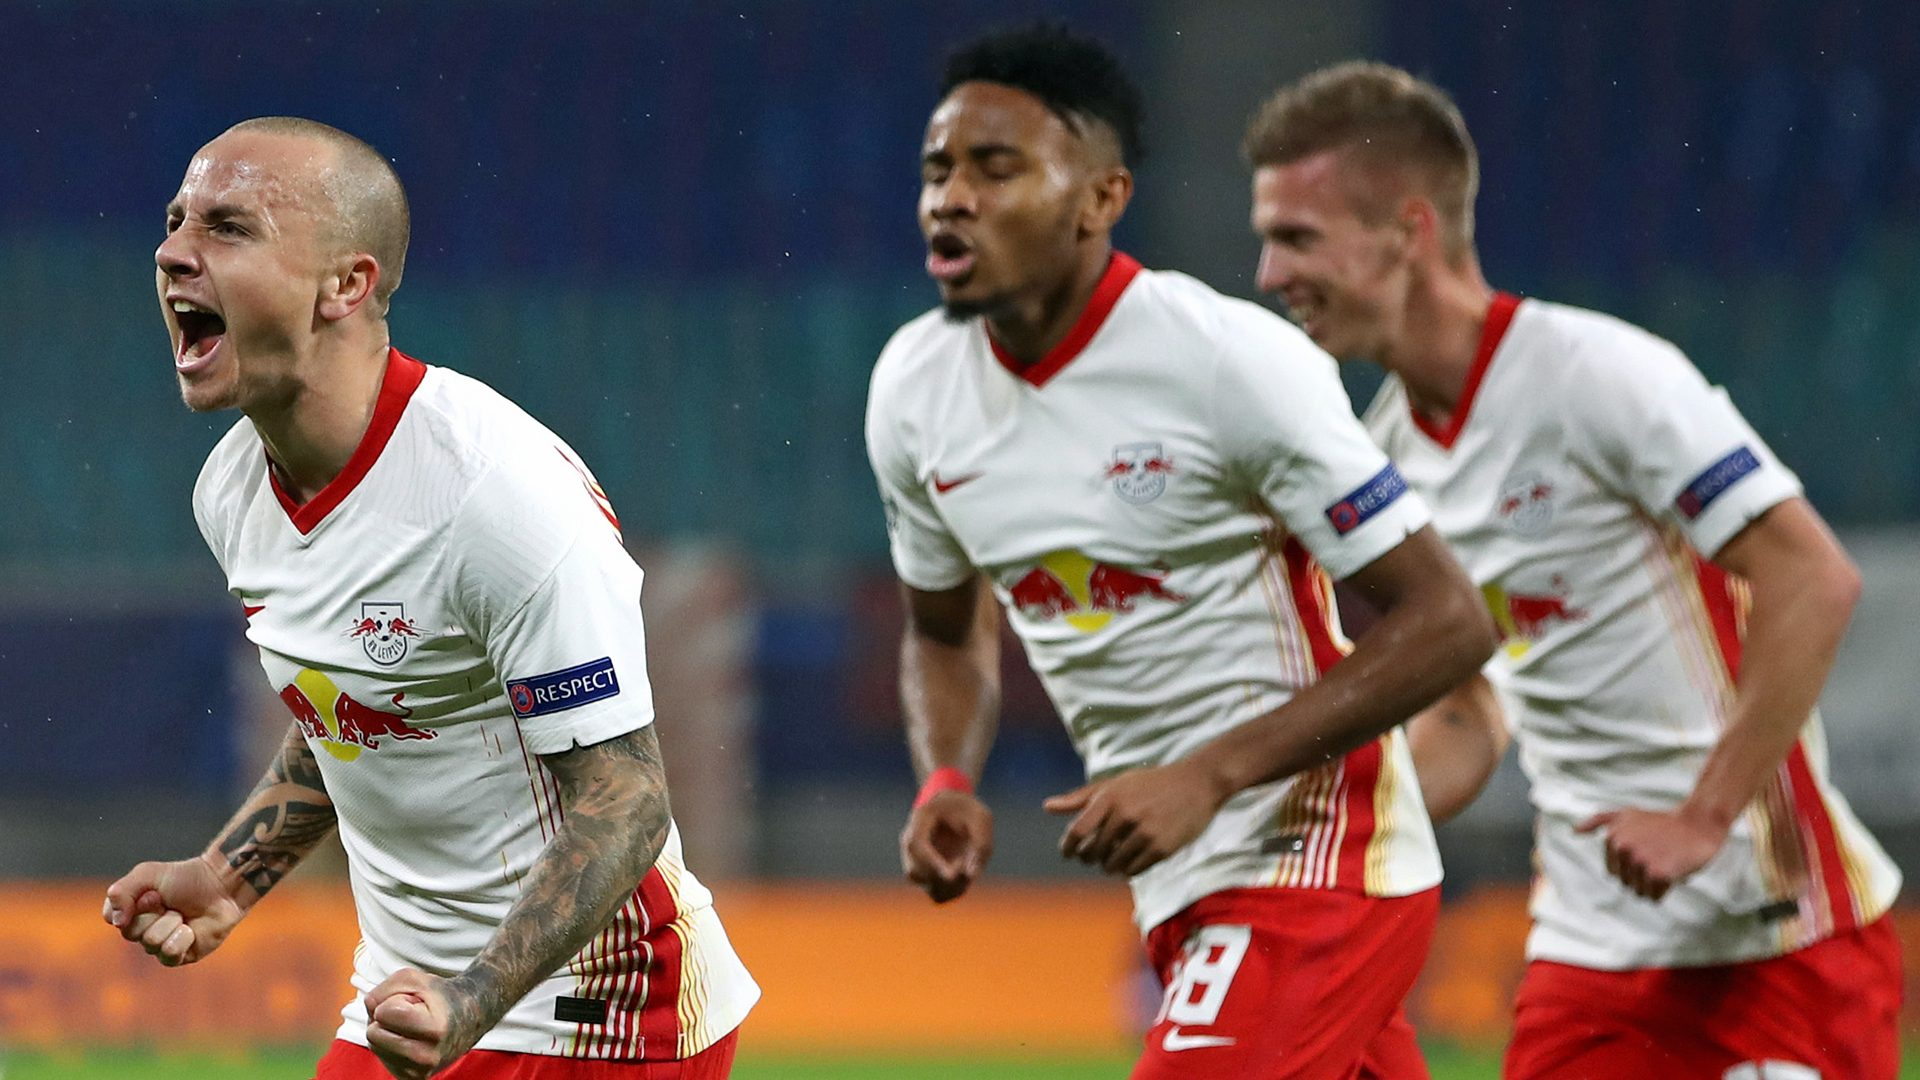 Bundesliga | Angelino double fires RB Leipzig to comfortable win over Istanbul Basaksehir